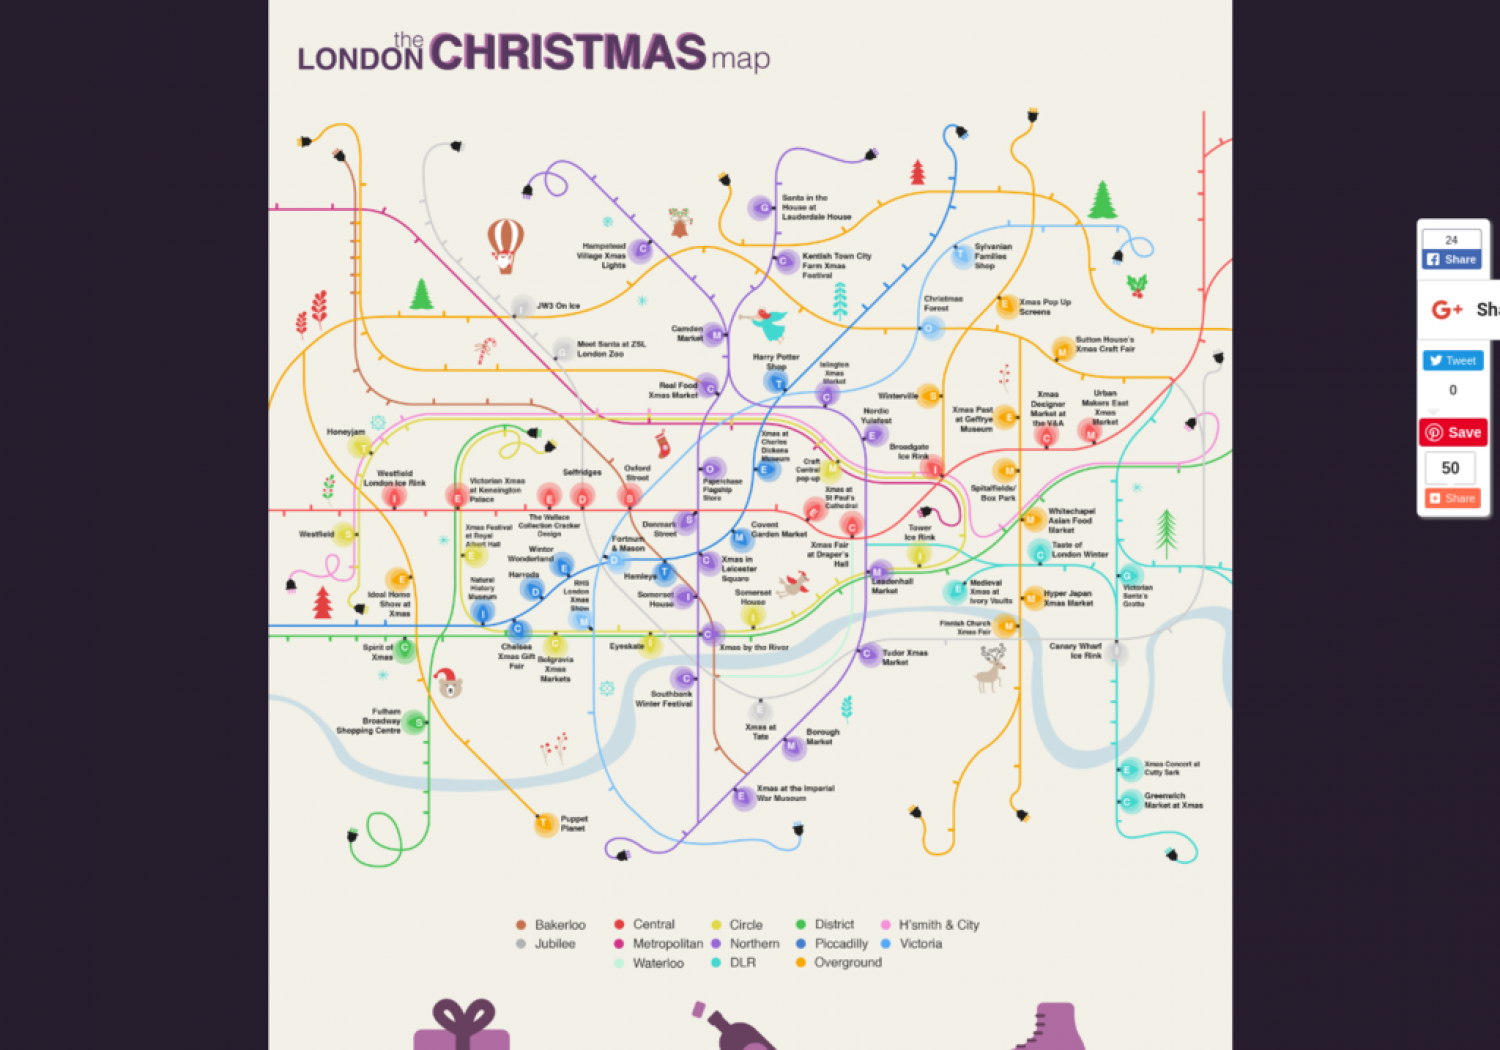 The London Christmas Map Infographic